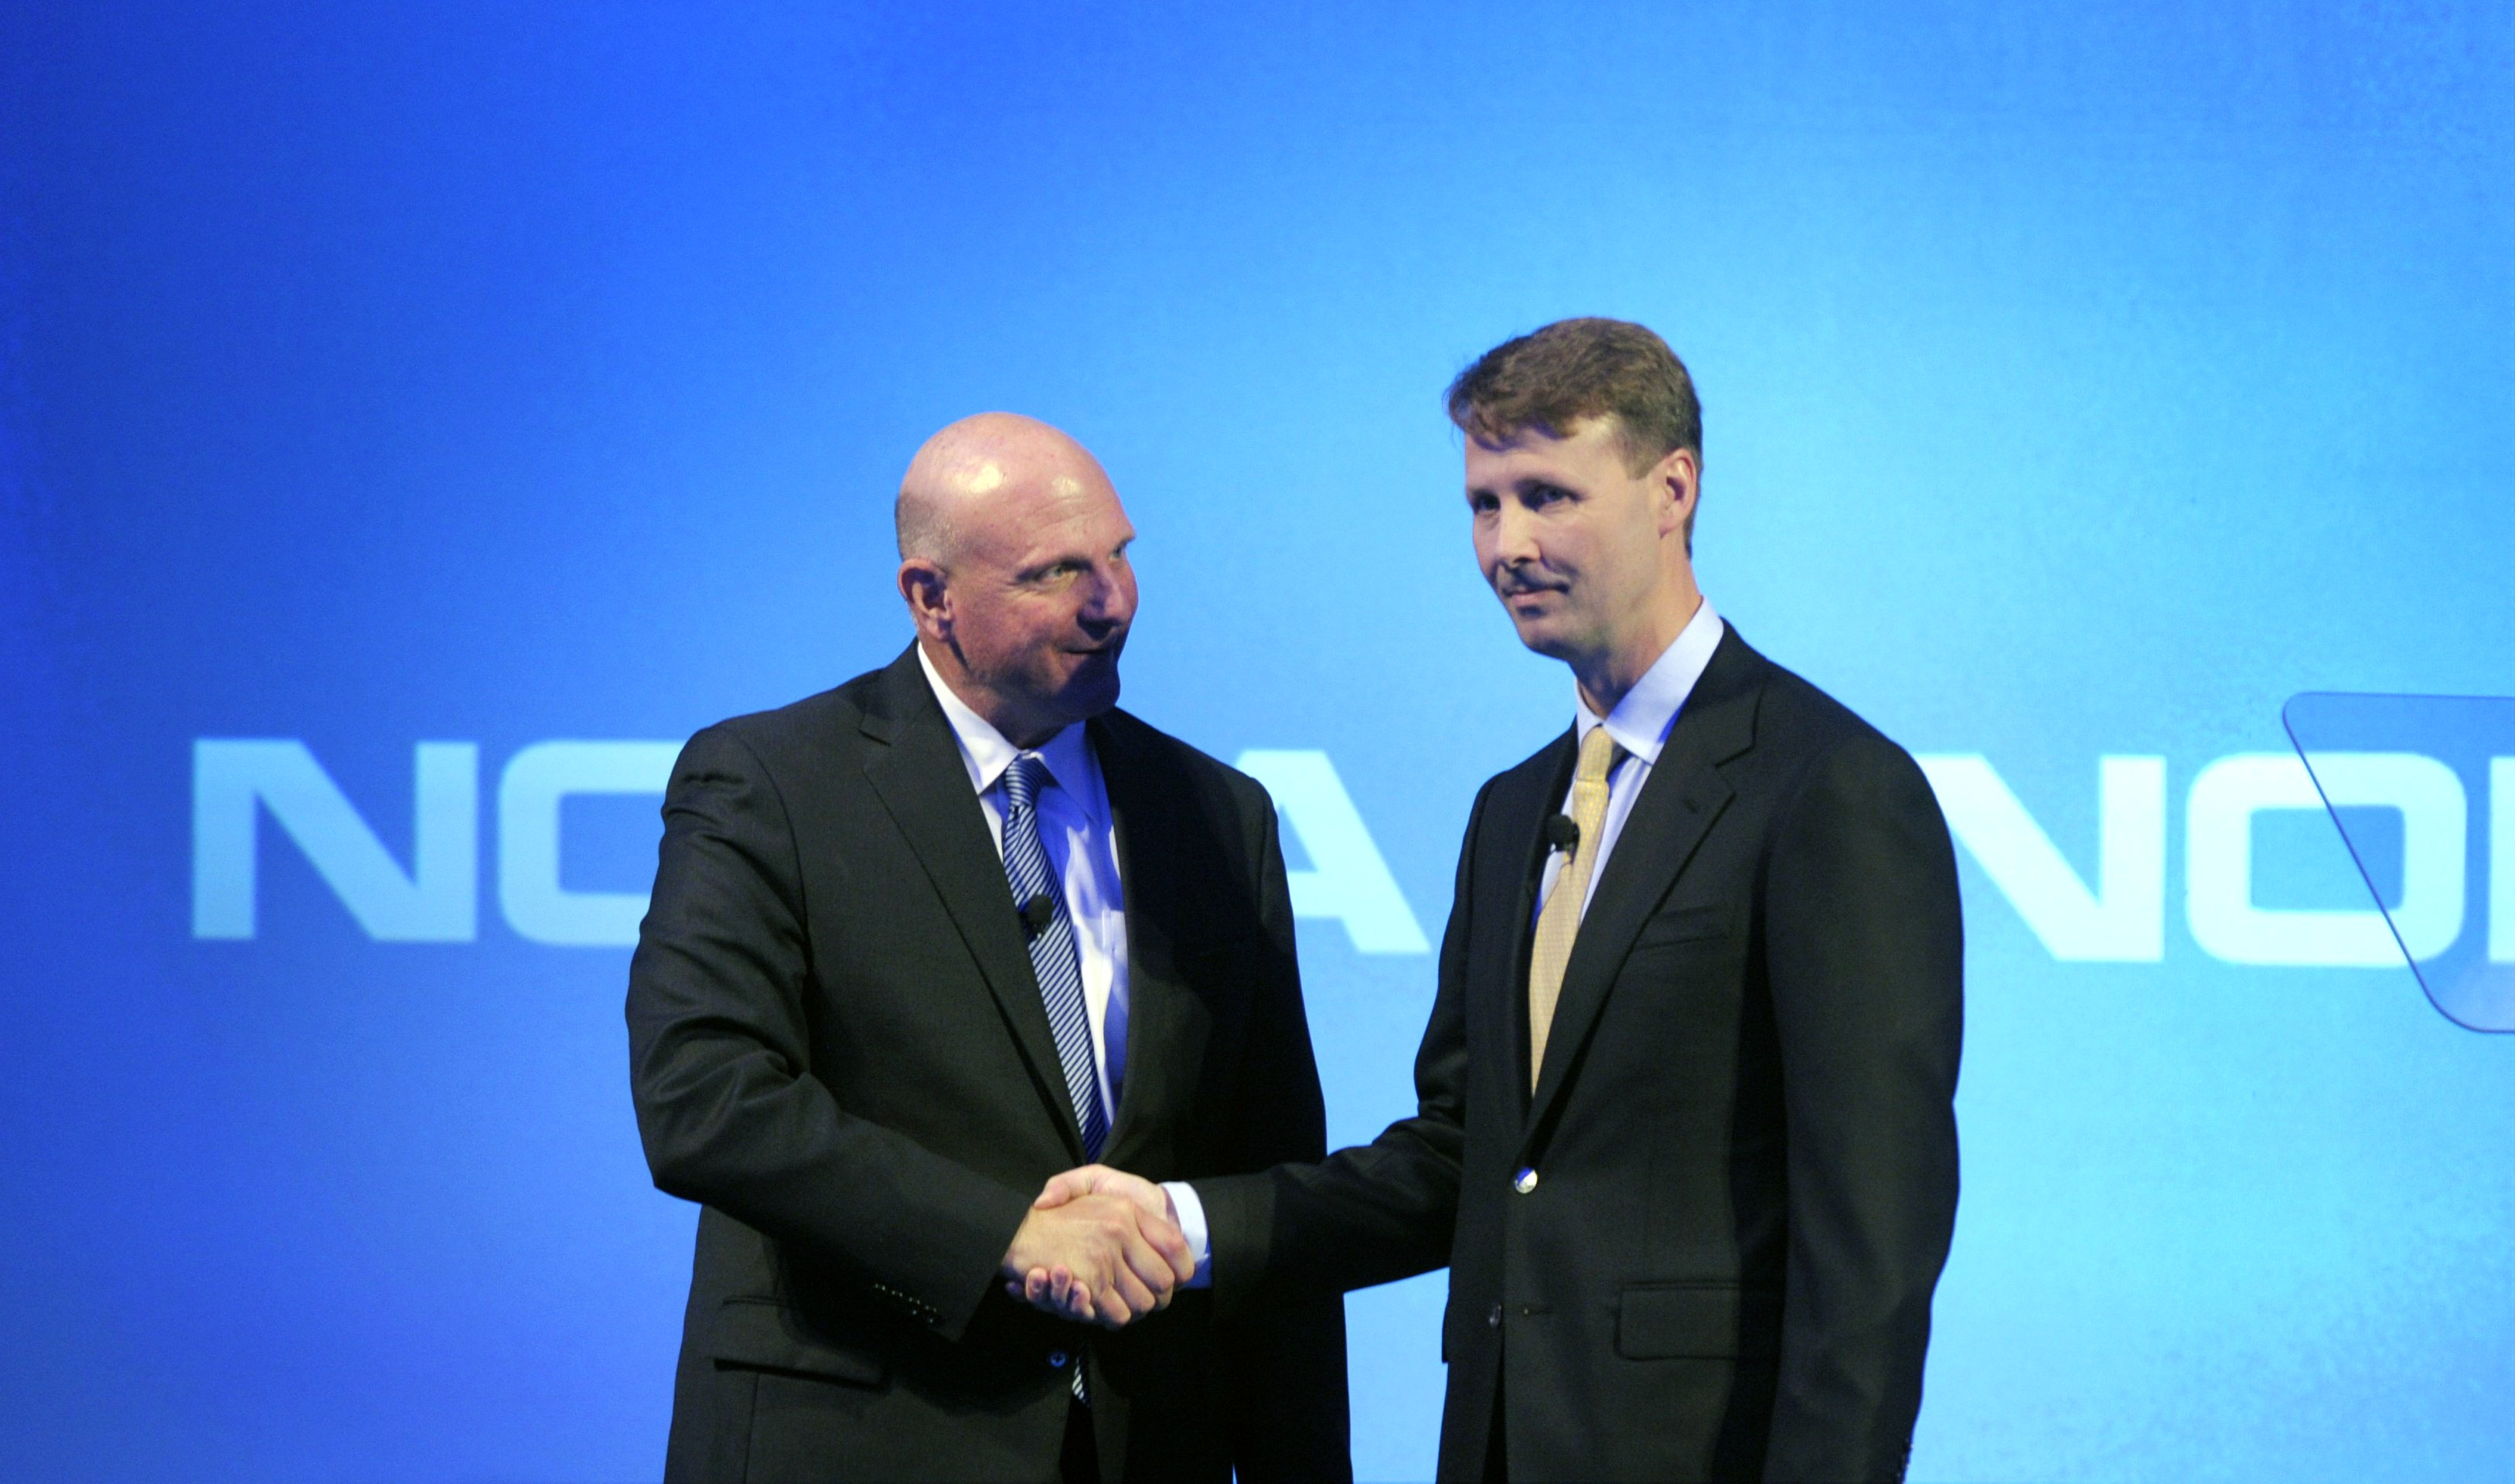 Microsoft CEO Steve Ballmer, left, shakes hands with Nokia's board Chairman Risto Siilasmaa.